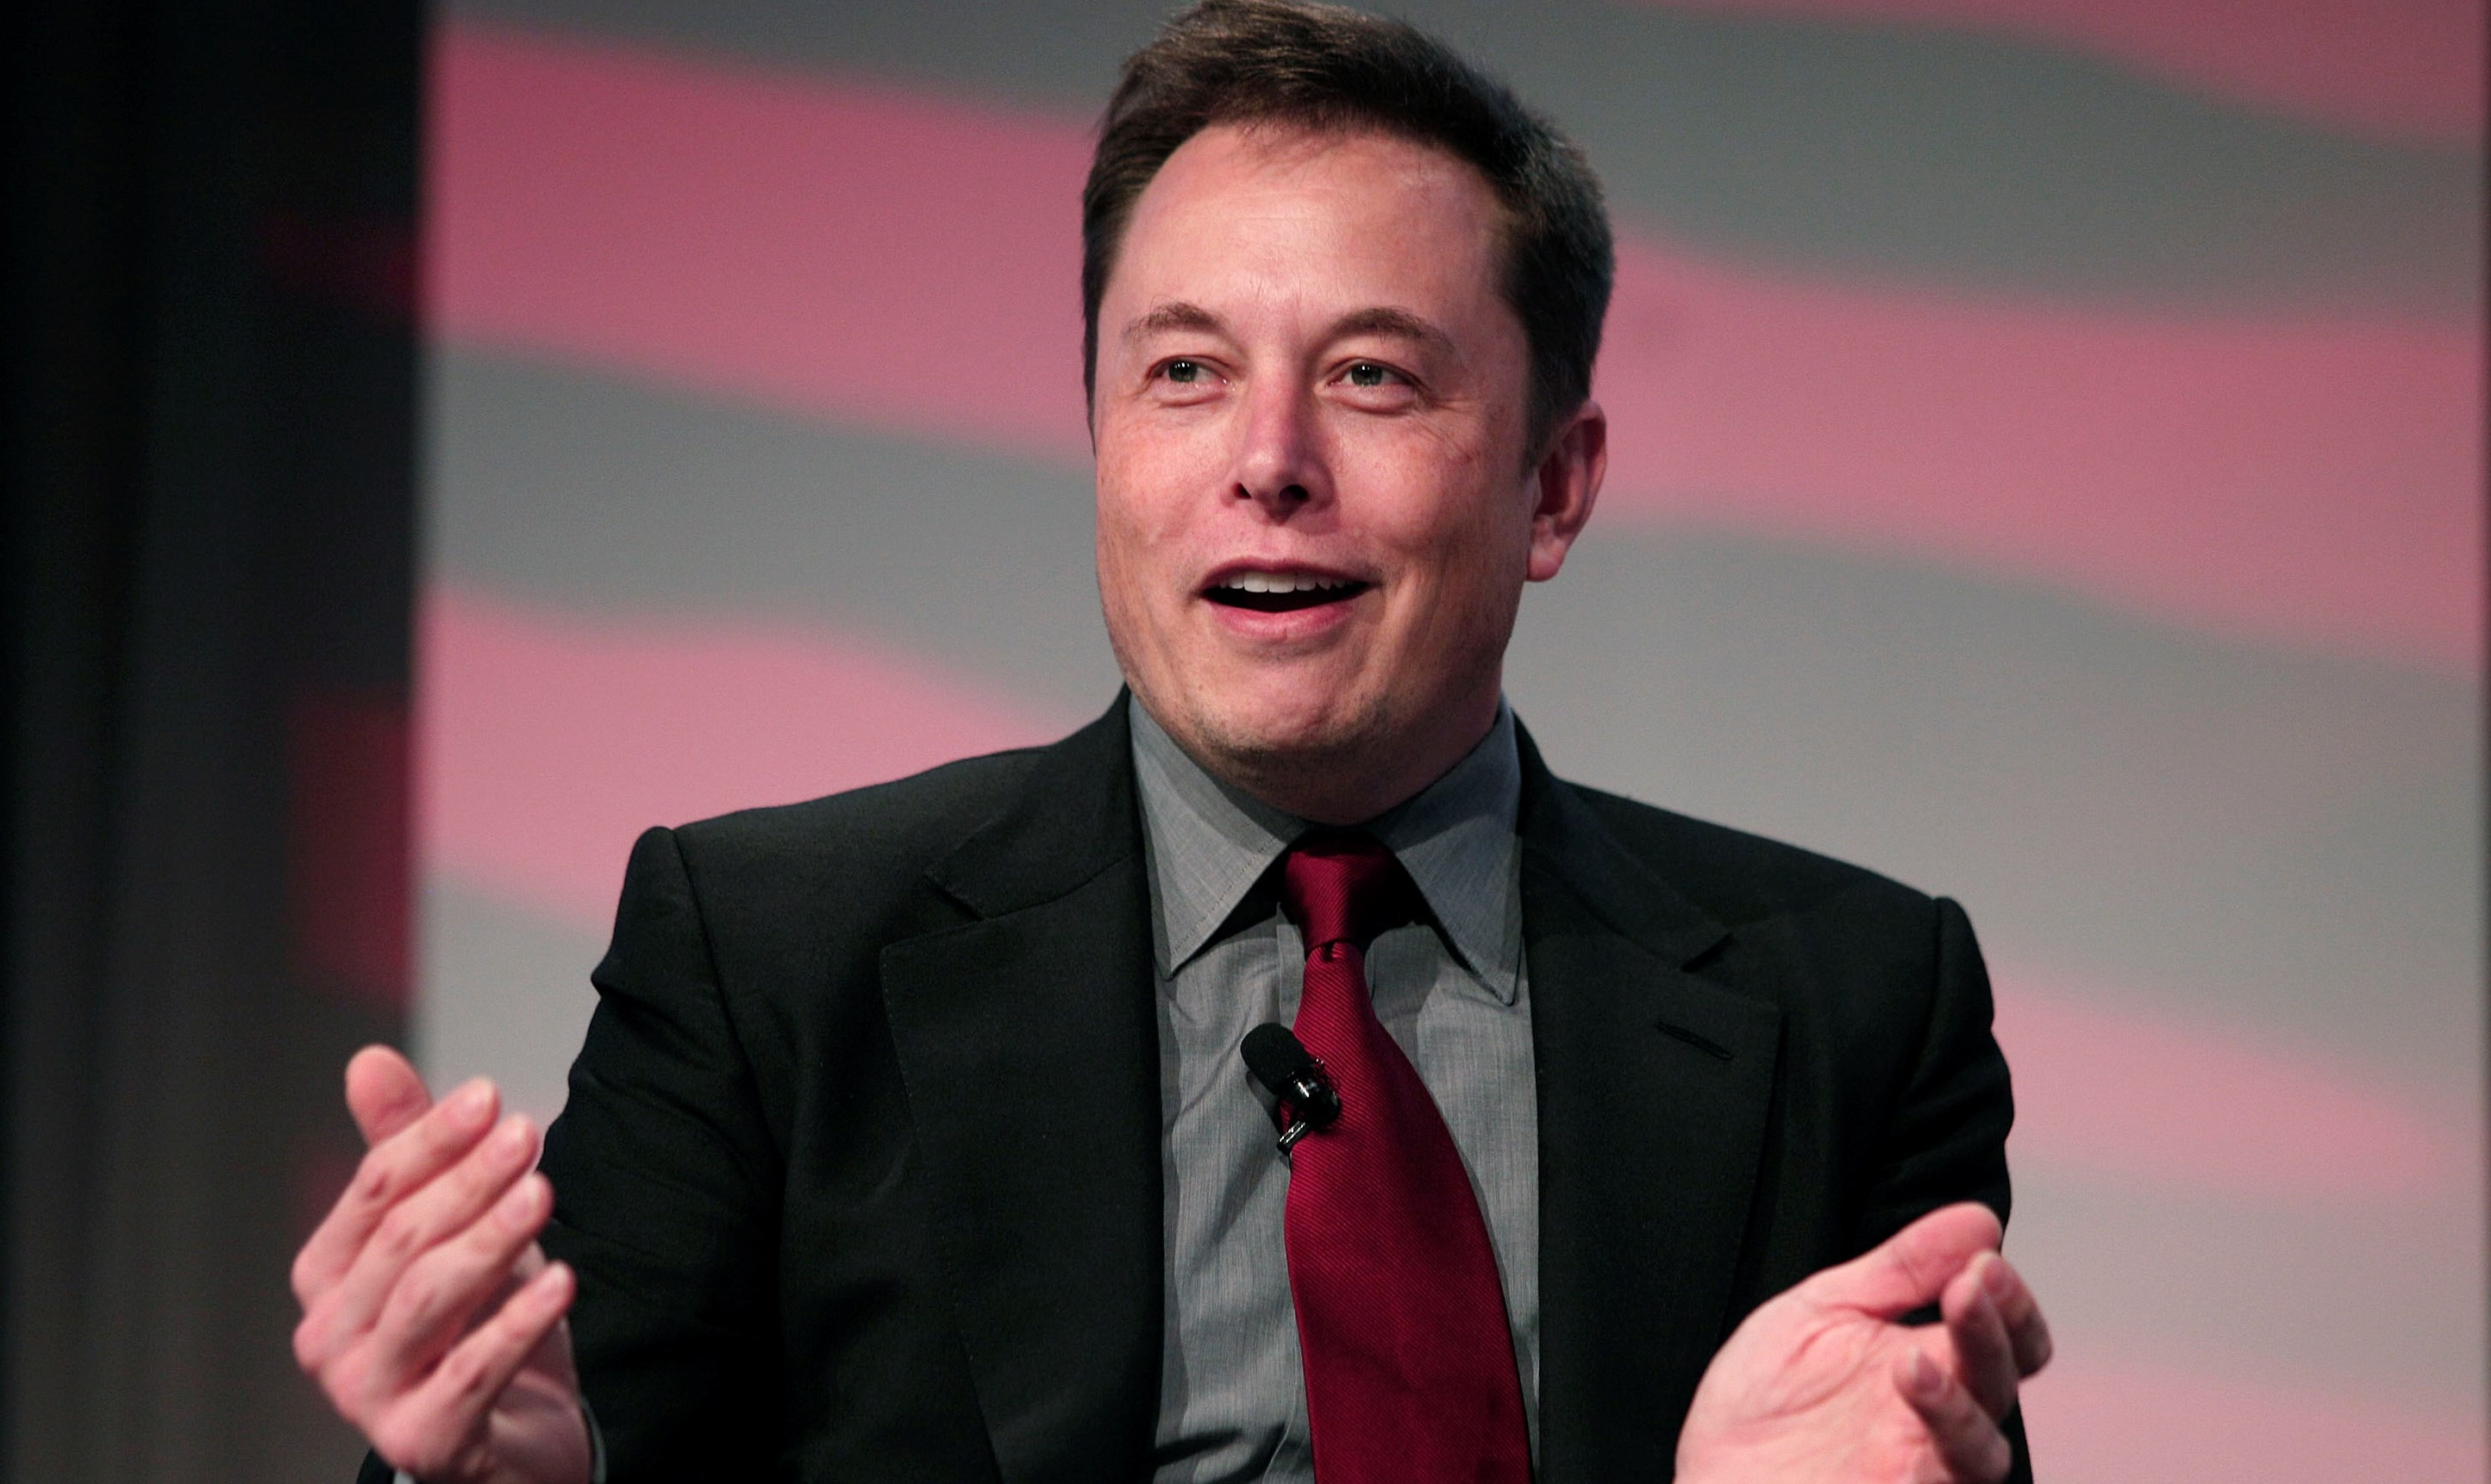 Elon Musk, who owns more than 20 percent of the stock in both companies and is SolarCity's chairman, has argued that no company is a better fit for Tesla than SolarCity. (Getty Images)